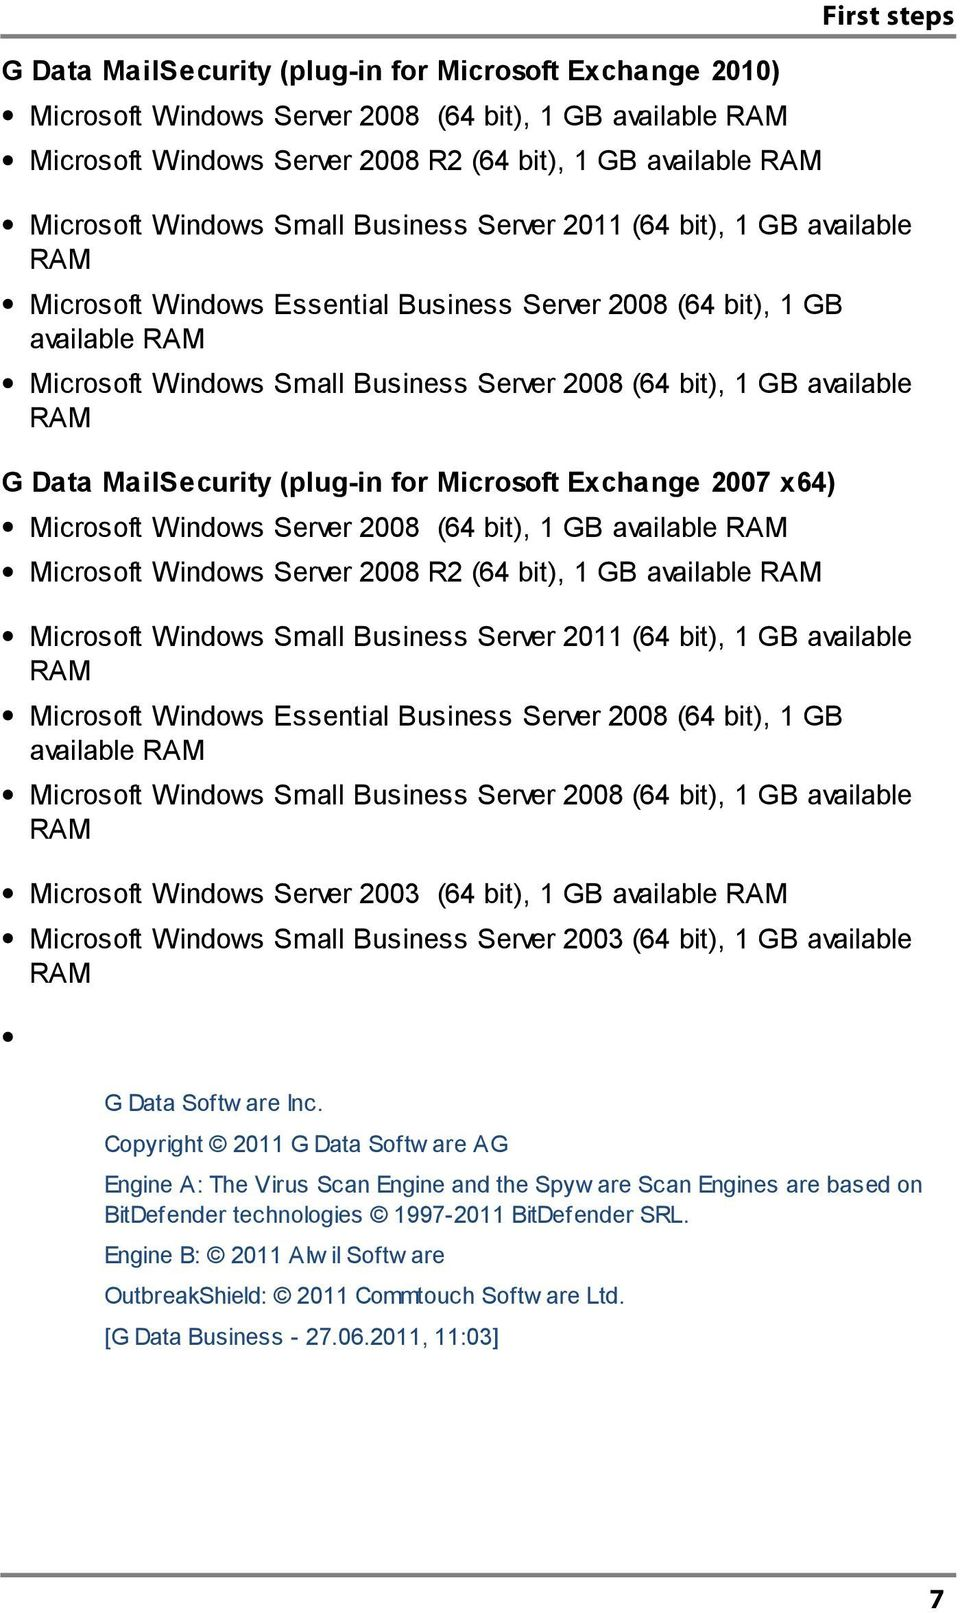 (64 bit), 1 GB available RAM G Data MailSecurity (plug-in for Microsoft Exchange 2007 x64) Microsoft Windows Server 2008 (64 bit), 1 GB available RAM Microsoft Windows Server 2008 R2 (64 bit), 1 GB